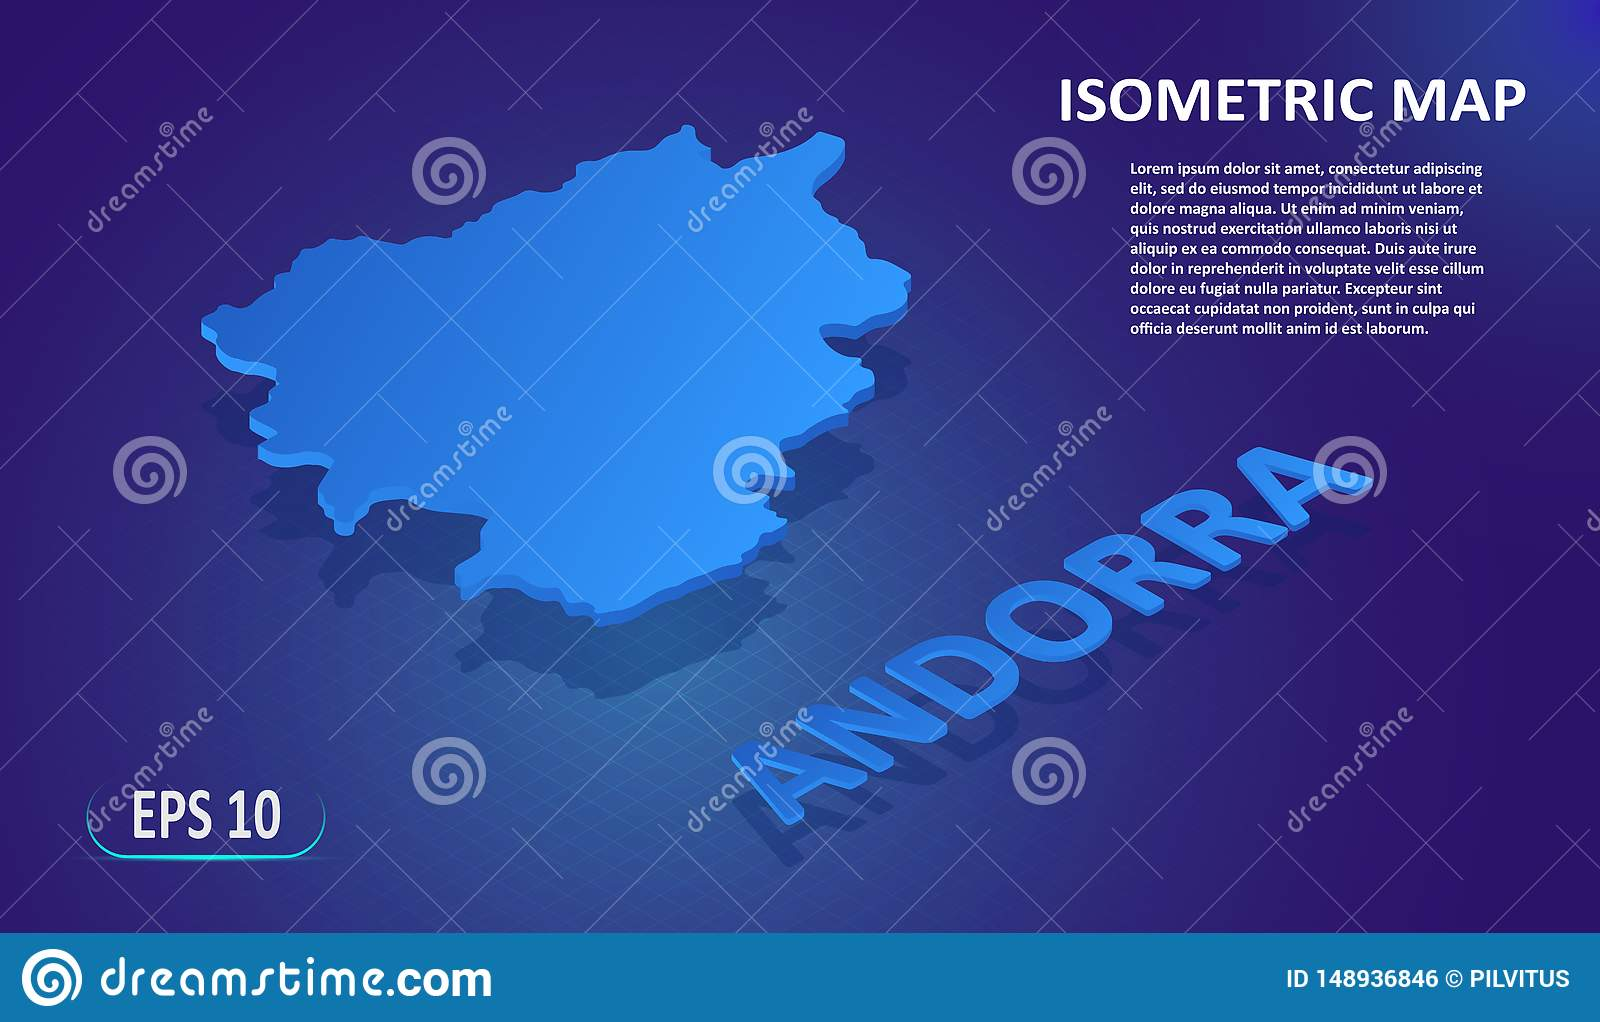 Isometric map of the ANDORRA. Stylized flat map of the country on blue background. Modern isometric or 3d location map